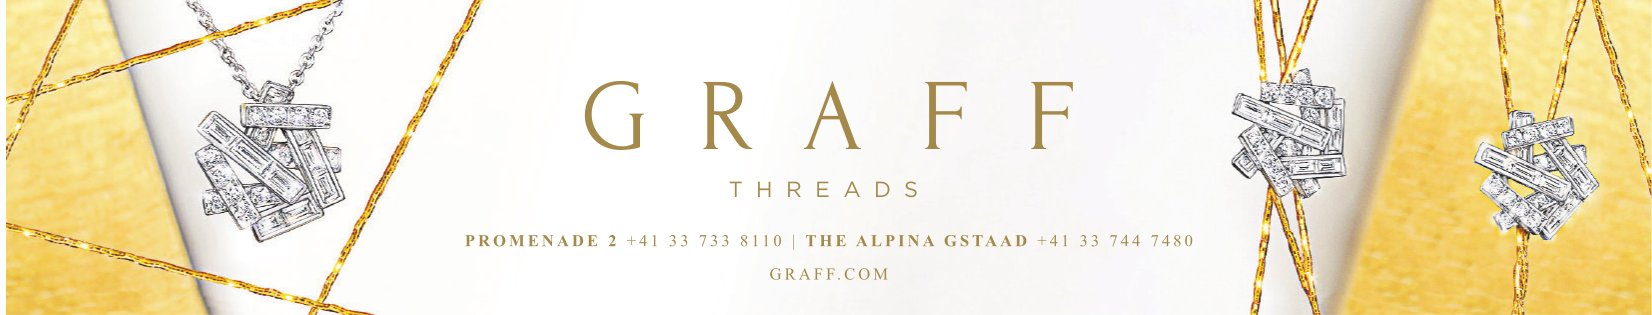 GRAFF THREADS, GSTAAD